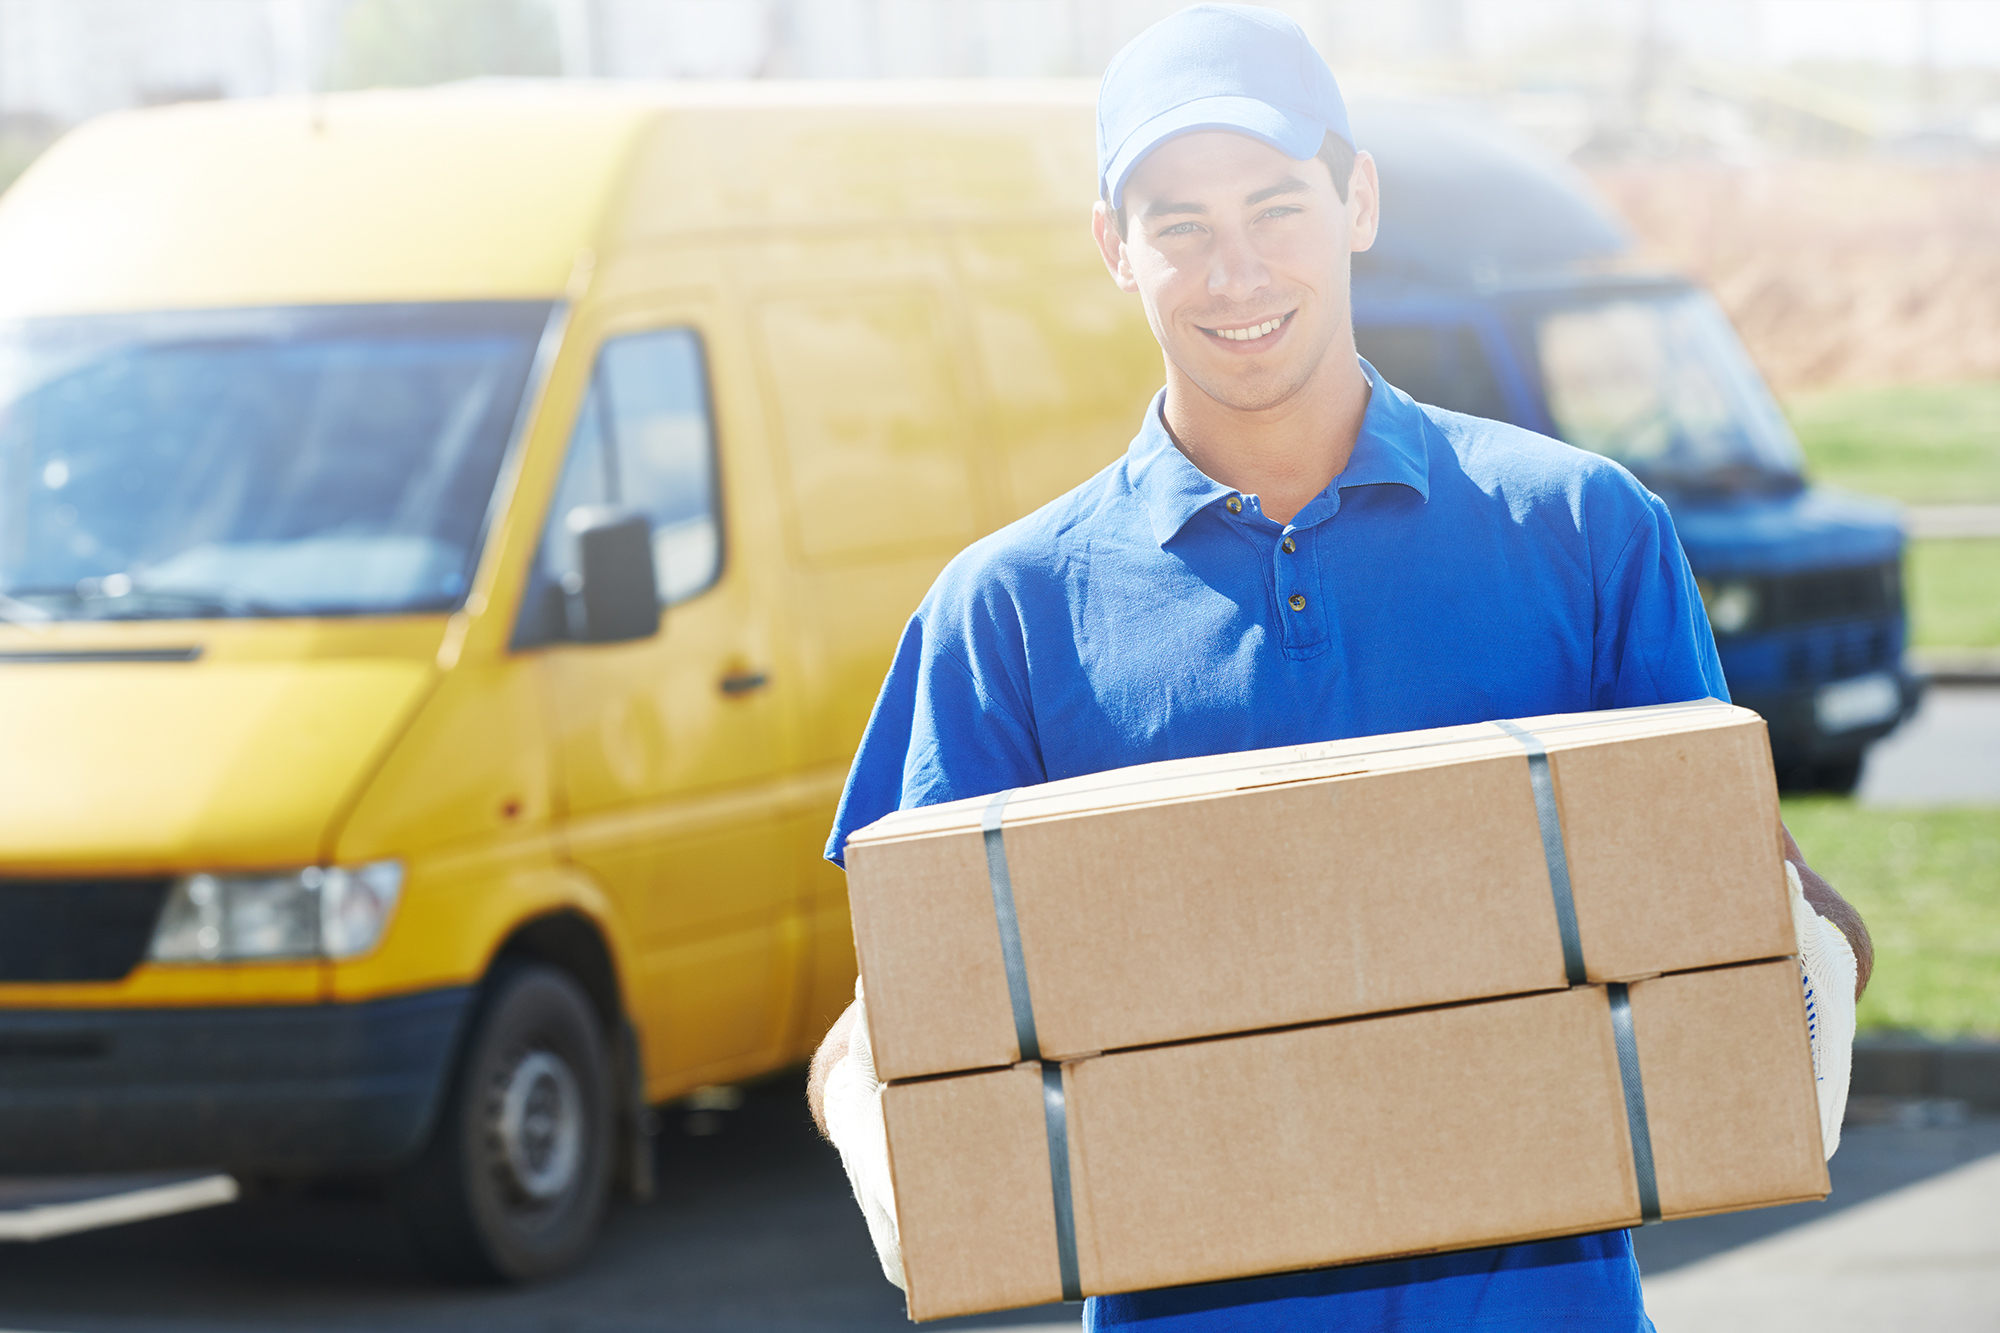 Parcel Delivery Man Holding Shipping Packages